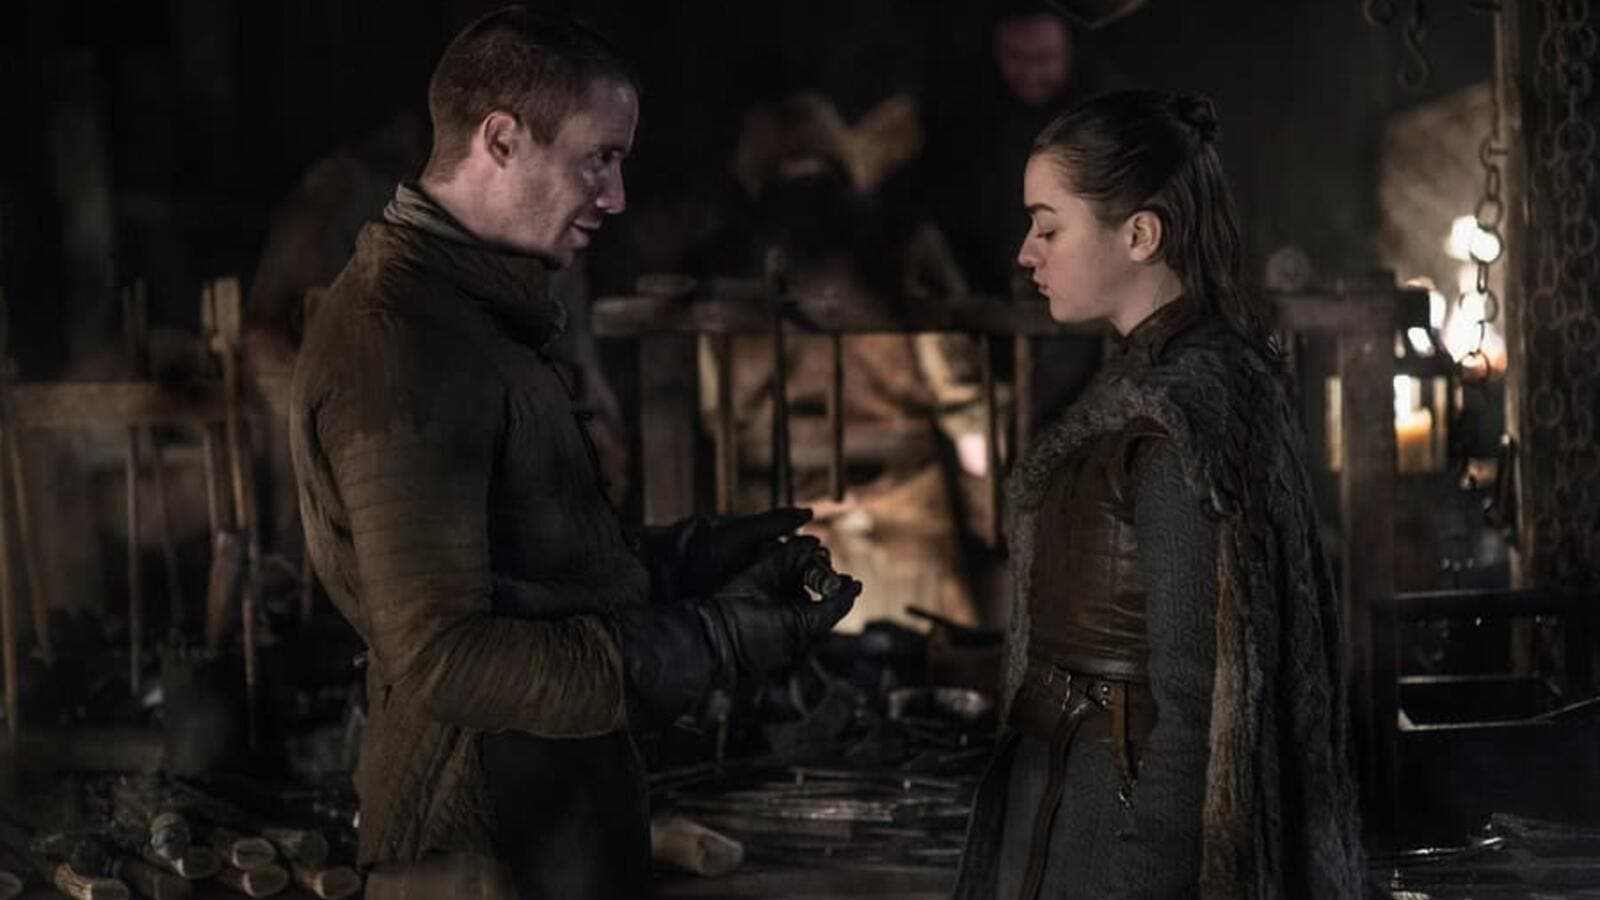 Arya Stark (Maisie Williams) got intimate with her lifelong friend Gendry (Joe Dempsie) in an unexpected nude scene. (Twitter)